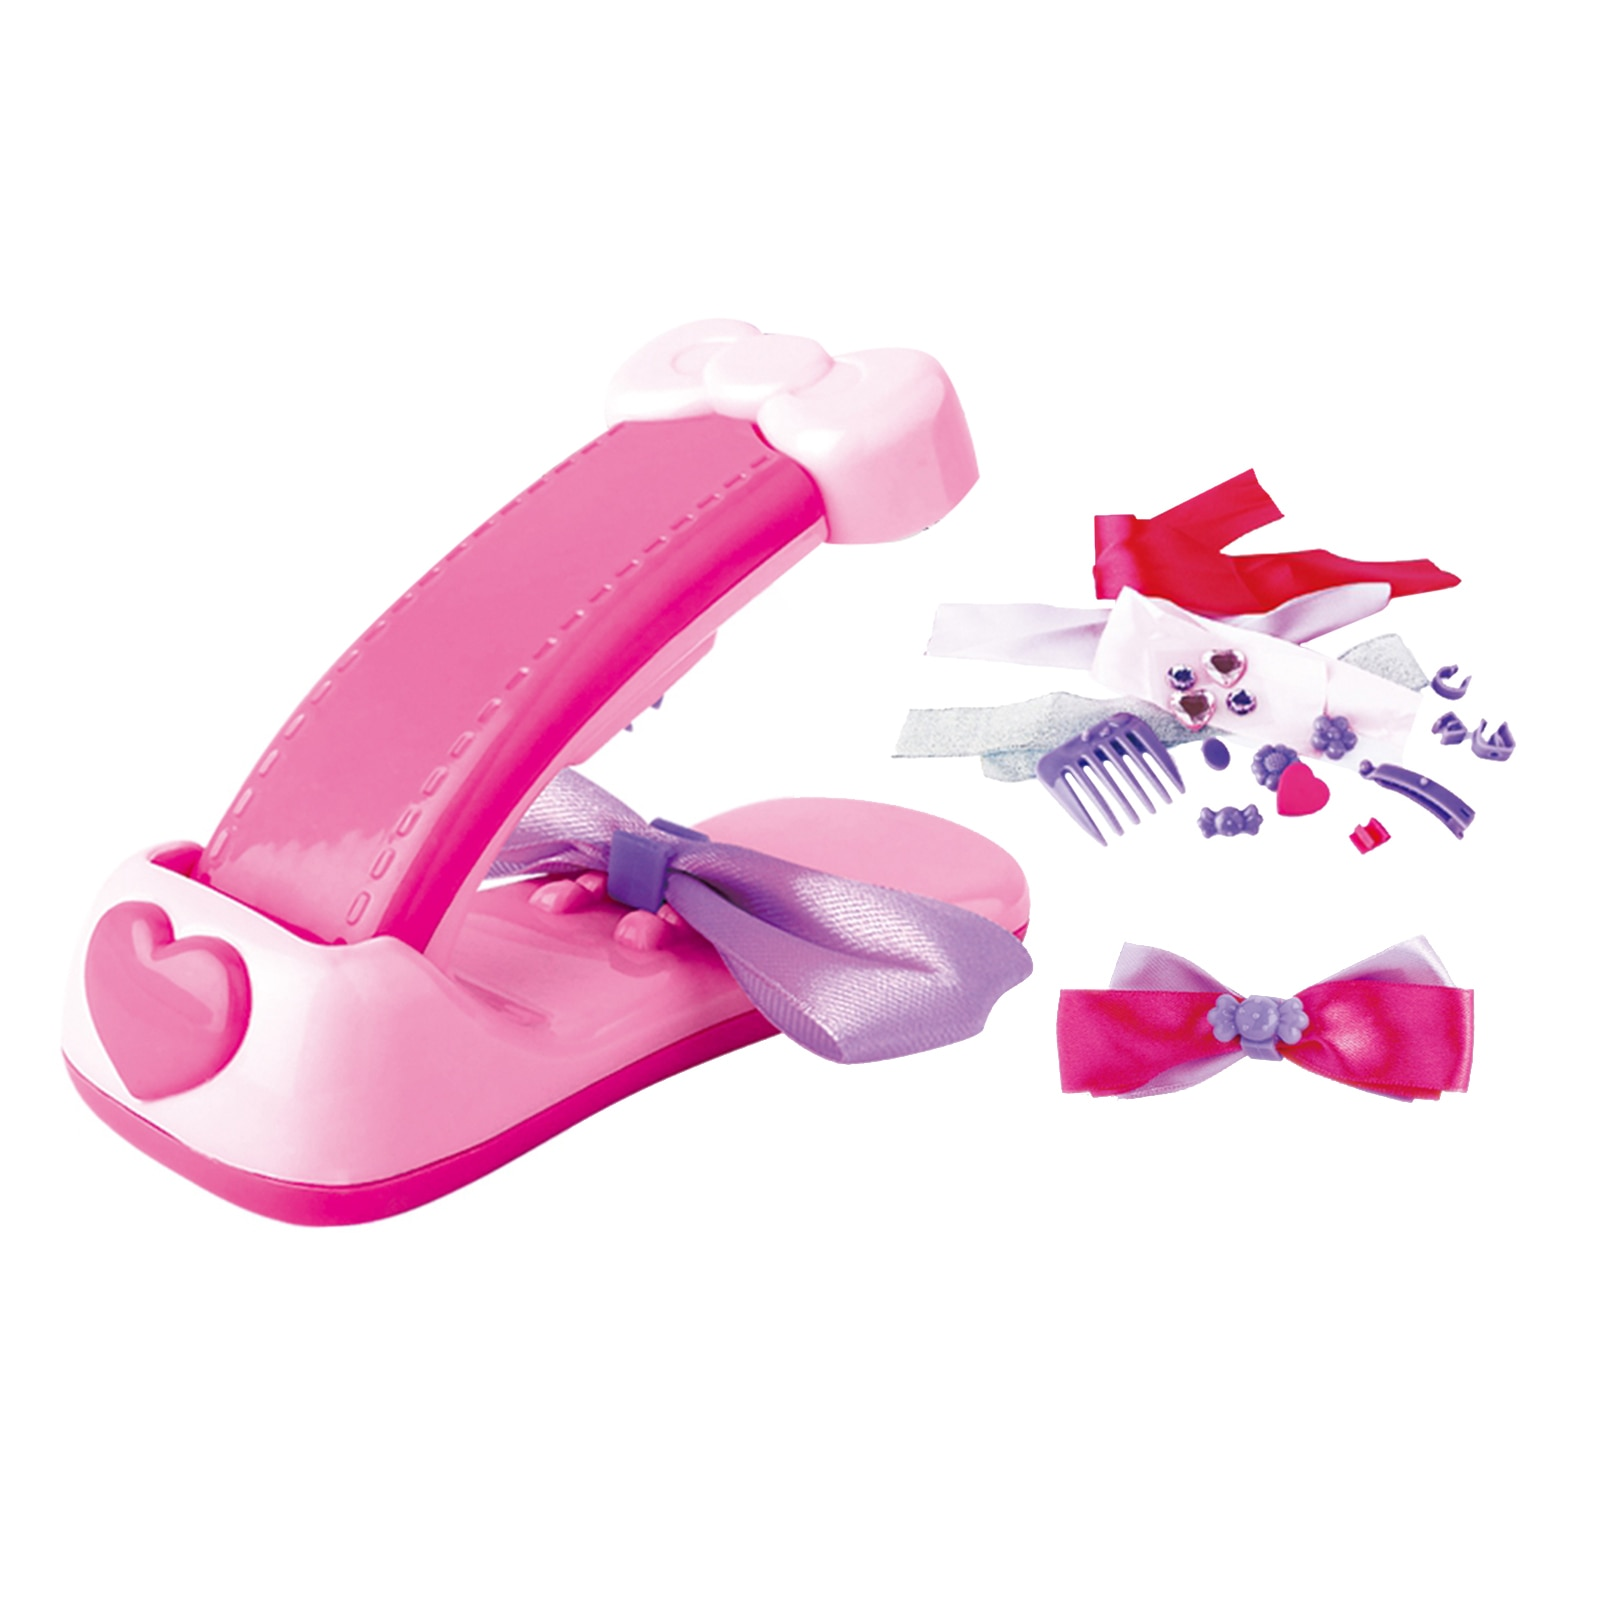 a001 fashionable hair style roller maker black Multi-color Bow Maker Kit, for Ages 7 to up, Fashionable Hair Bow Making Kit